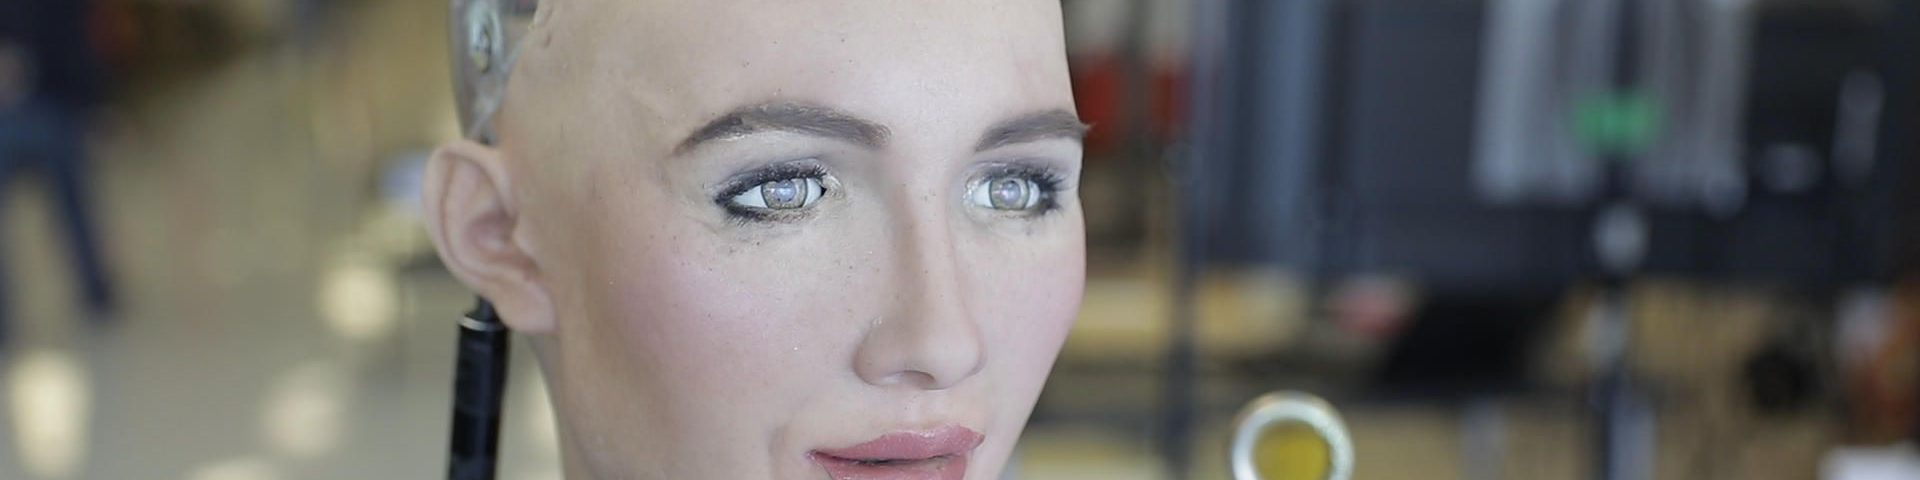 Sophia the Robot Walk for the First Time